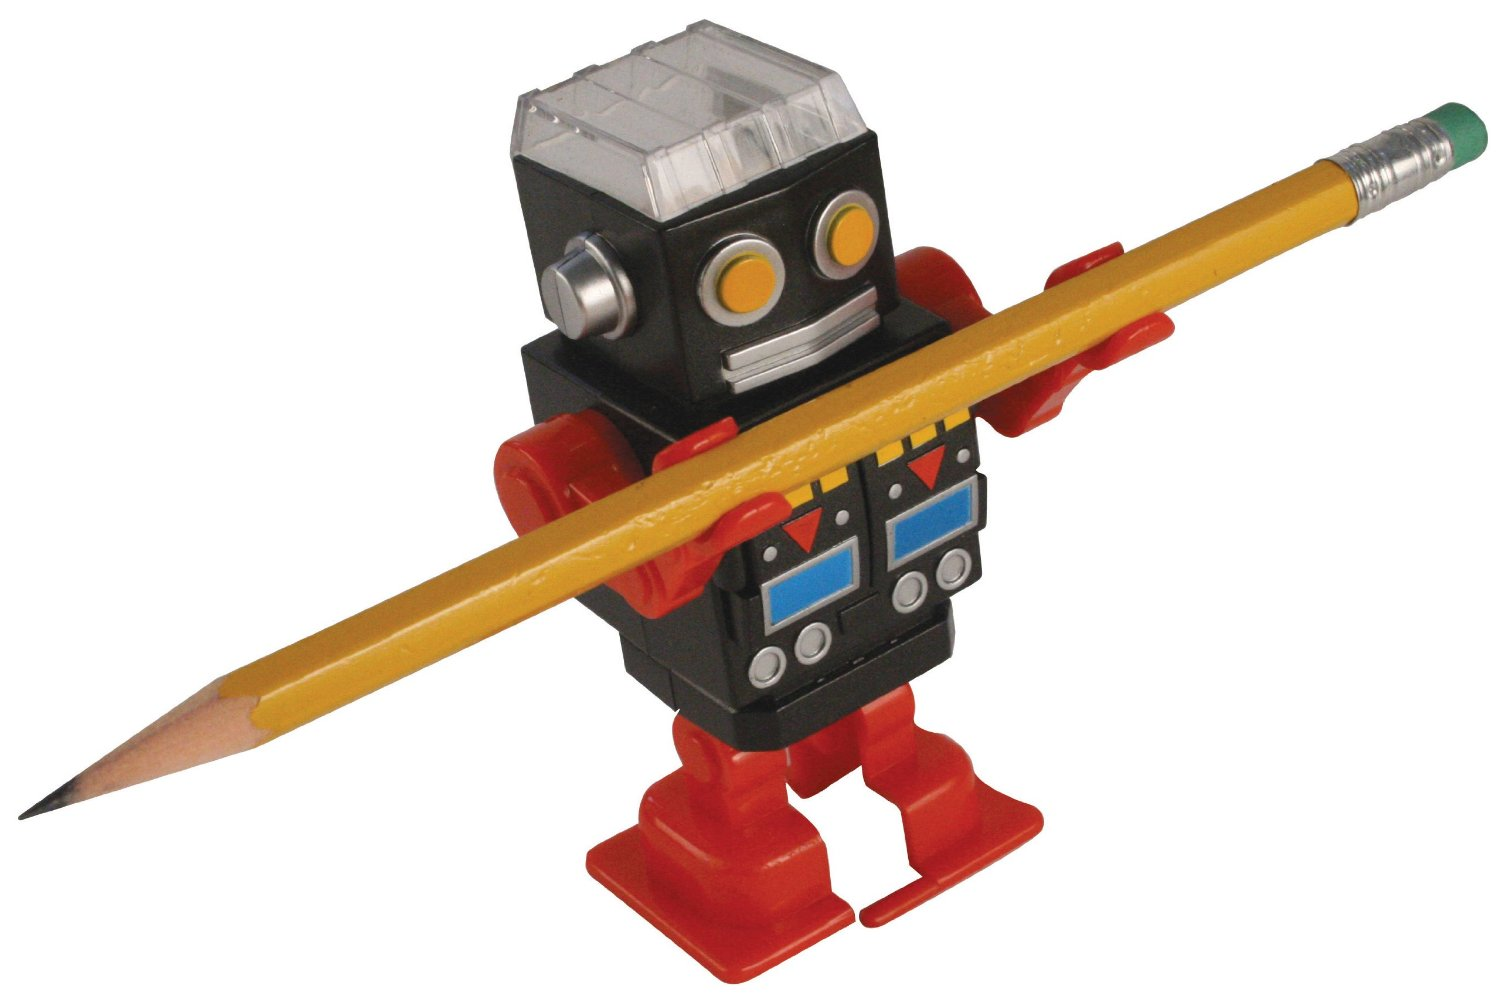 Walking Robot Pencil Sharpener | Sheknows.com